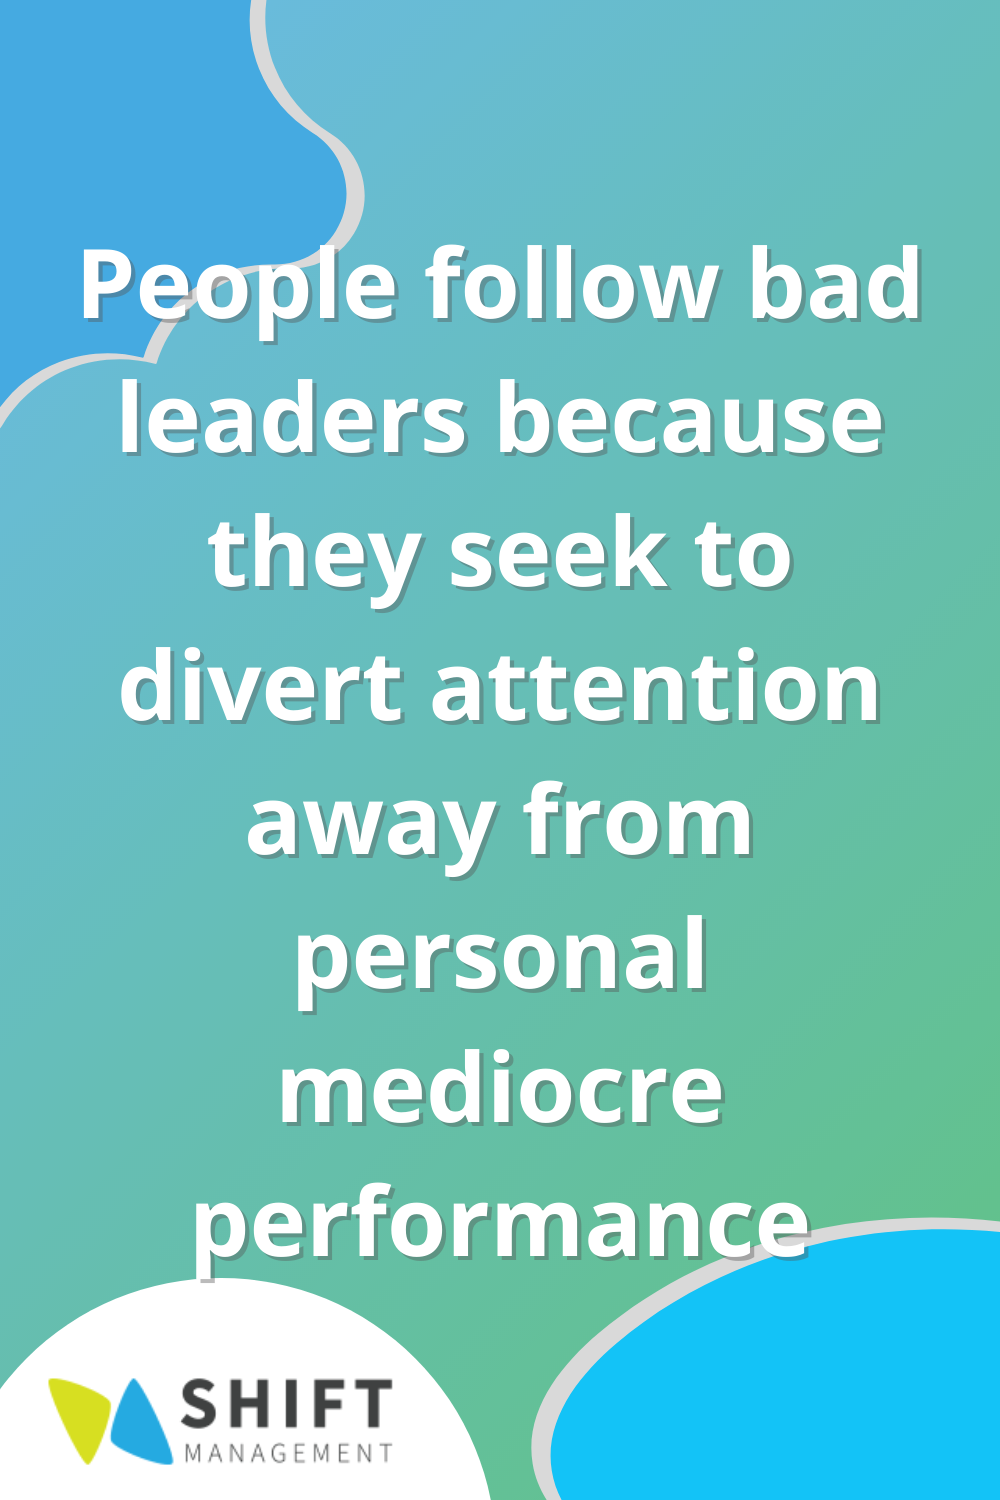 people follow bad leaders because they seek to divert attention away from personal mediocre performance